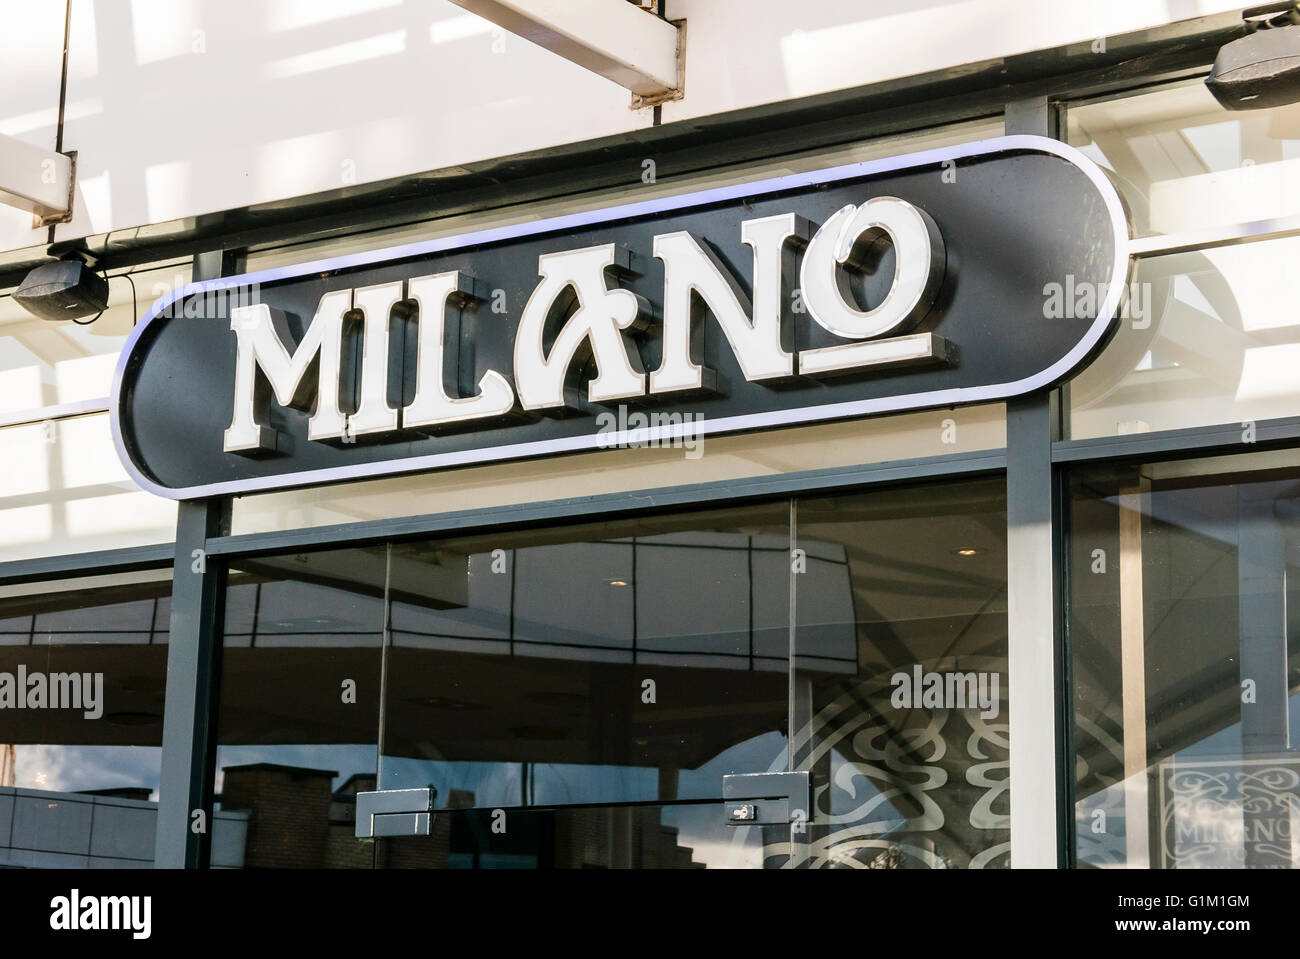 Milano pizza restaurant, the Republic Of Ireland brand for Pizza Express. - Stock Image